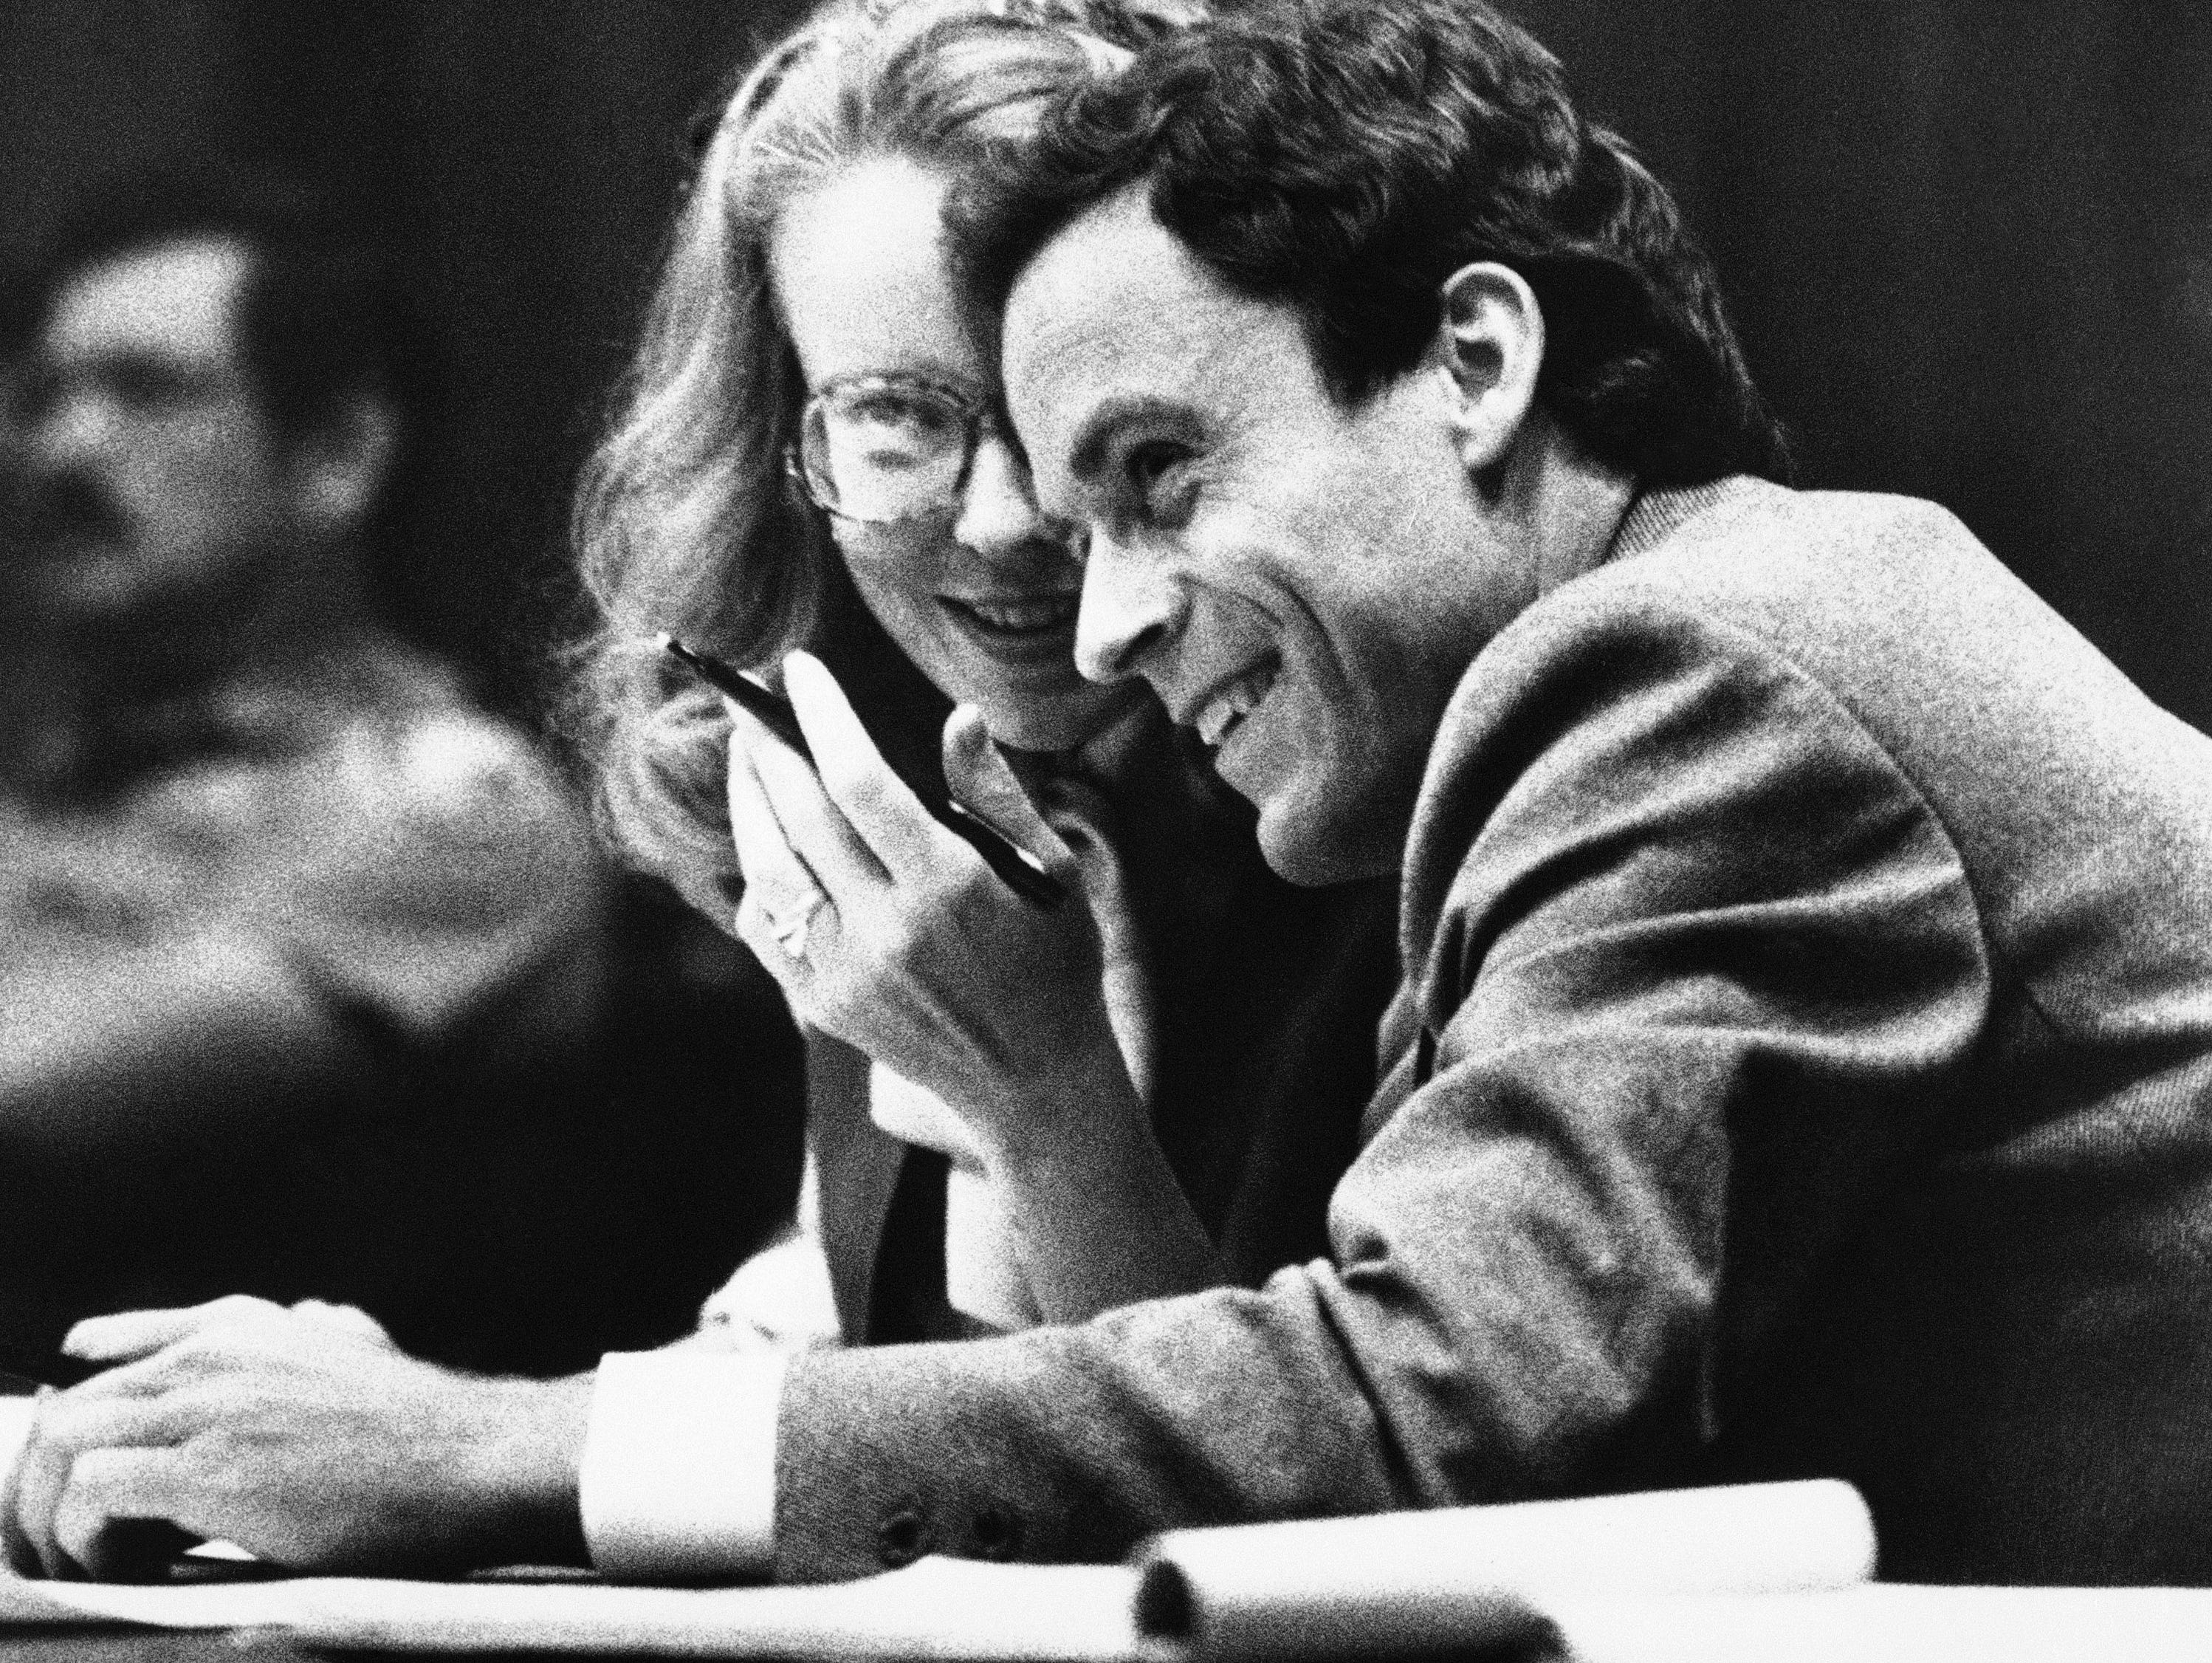 Theodore Bundy, right, smiles as he huddles with Margaret Good, a member of his defense team, during the jury selection portion of Bundy's murder trial, July 6, 1979, Miami, Fla. Bundy is accused of murdering two Florida State Univ. co-eds.